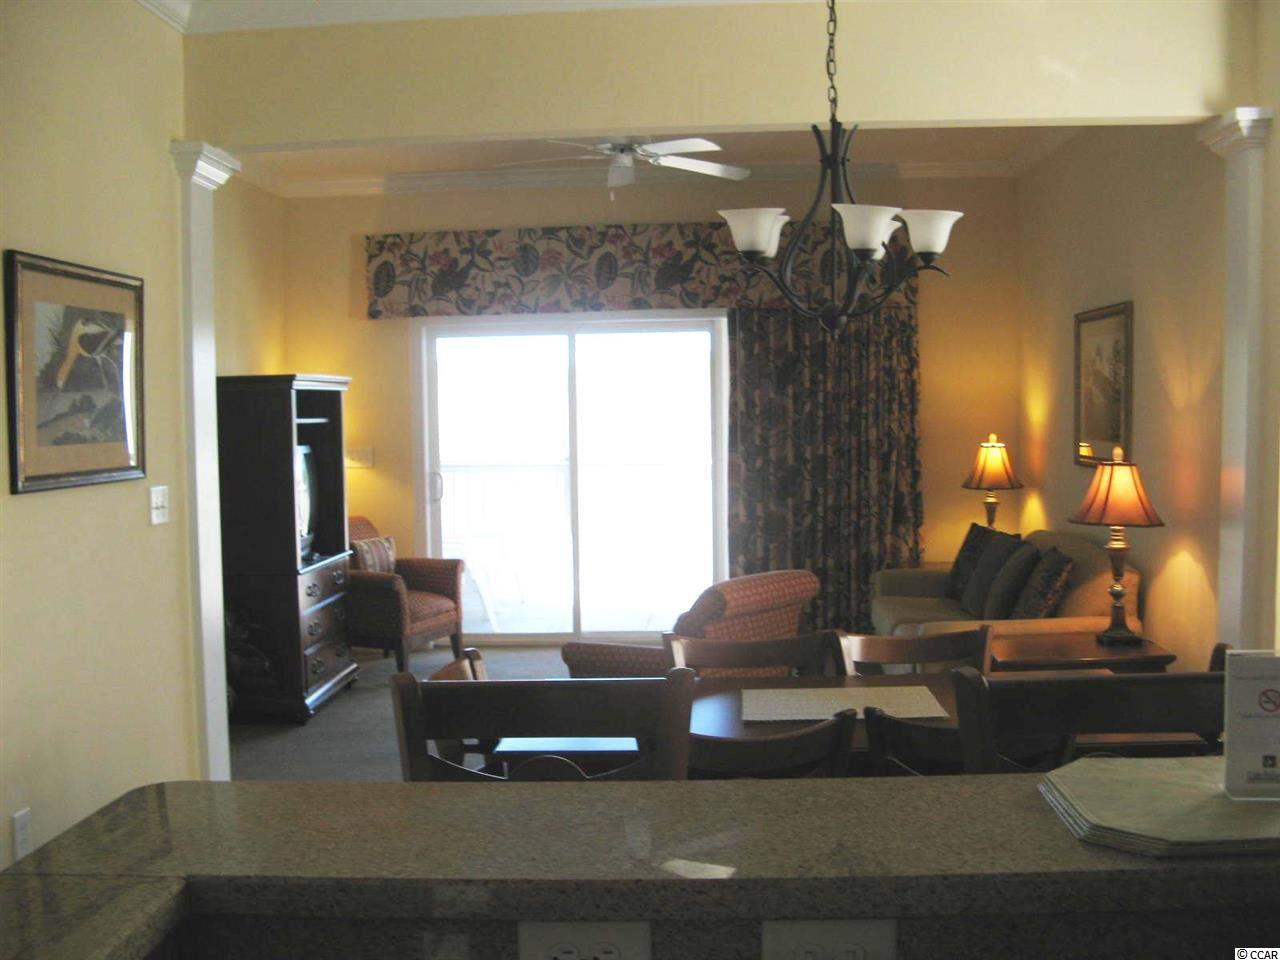 Seaside Inn condo for sale in Pawleys Island, SC